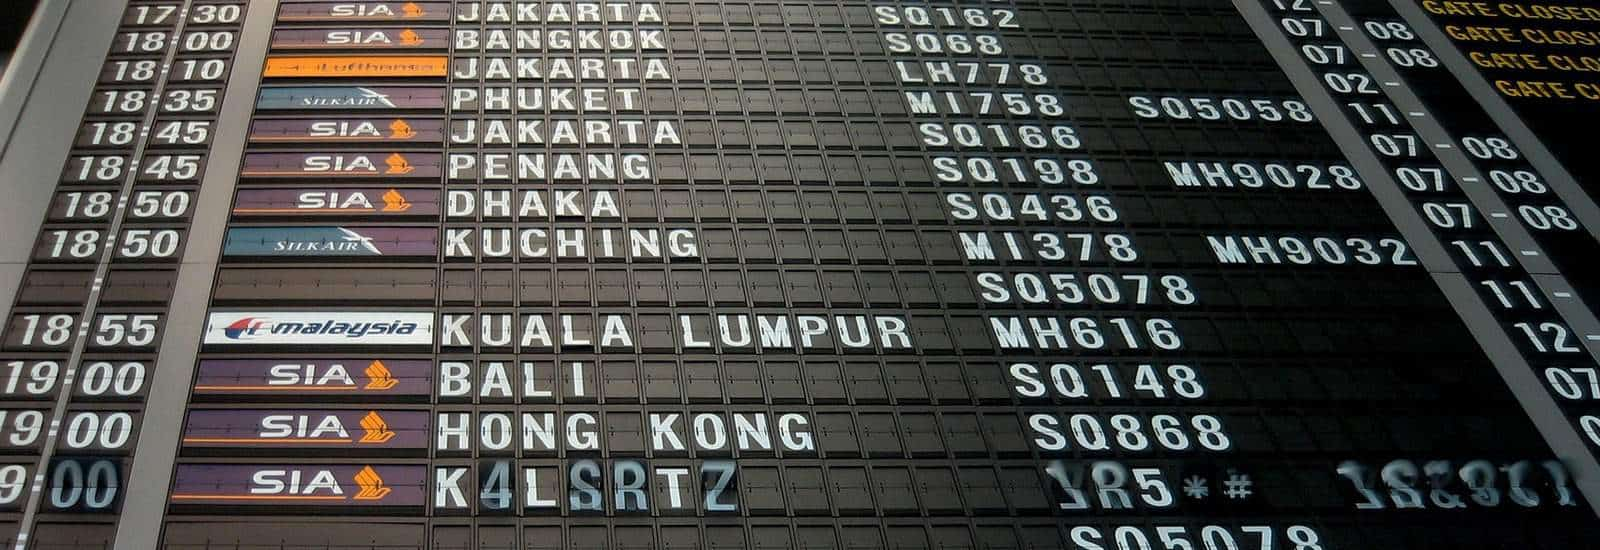 Destination Board at Airport